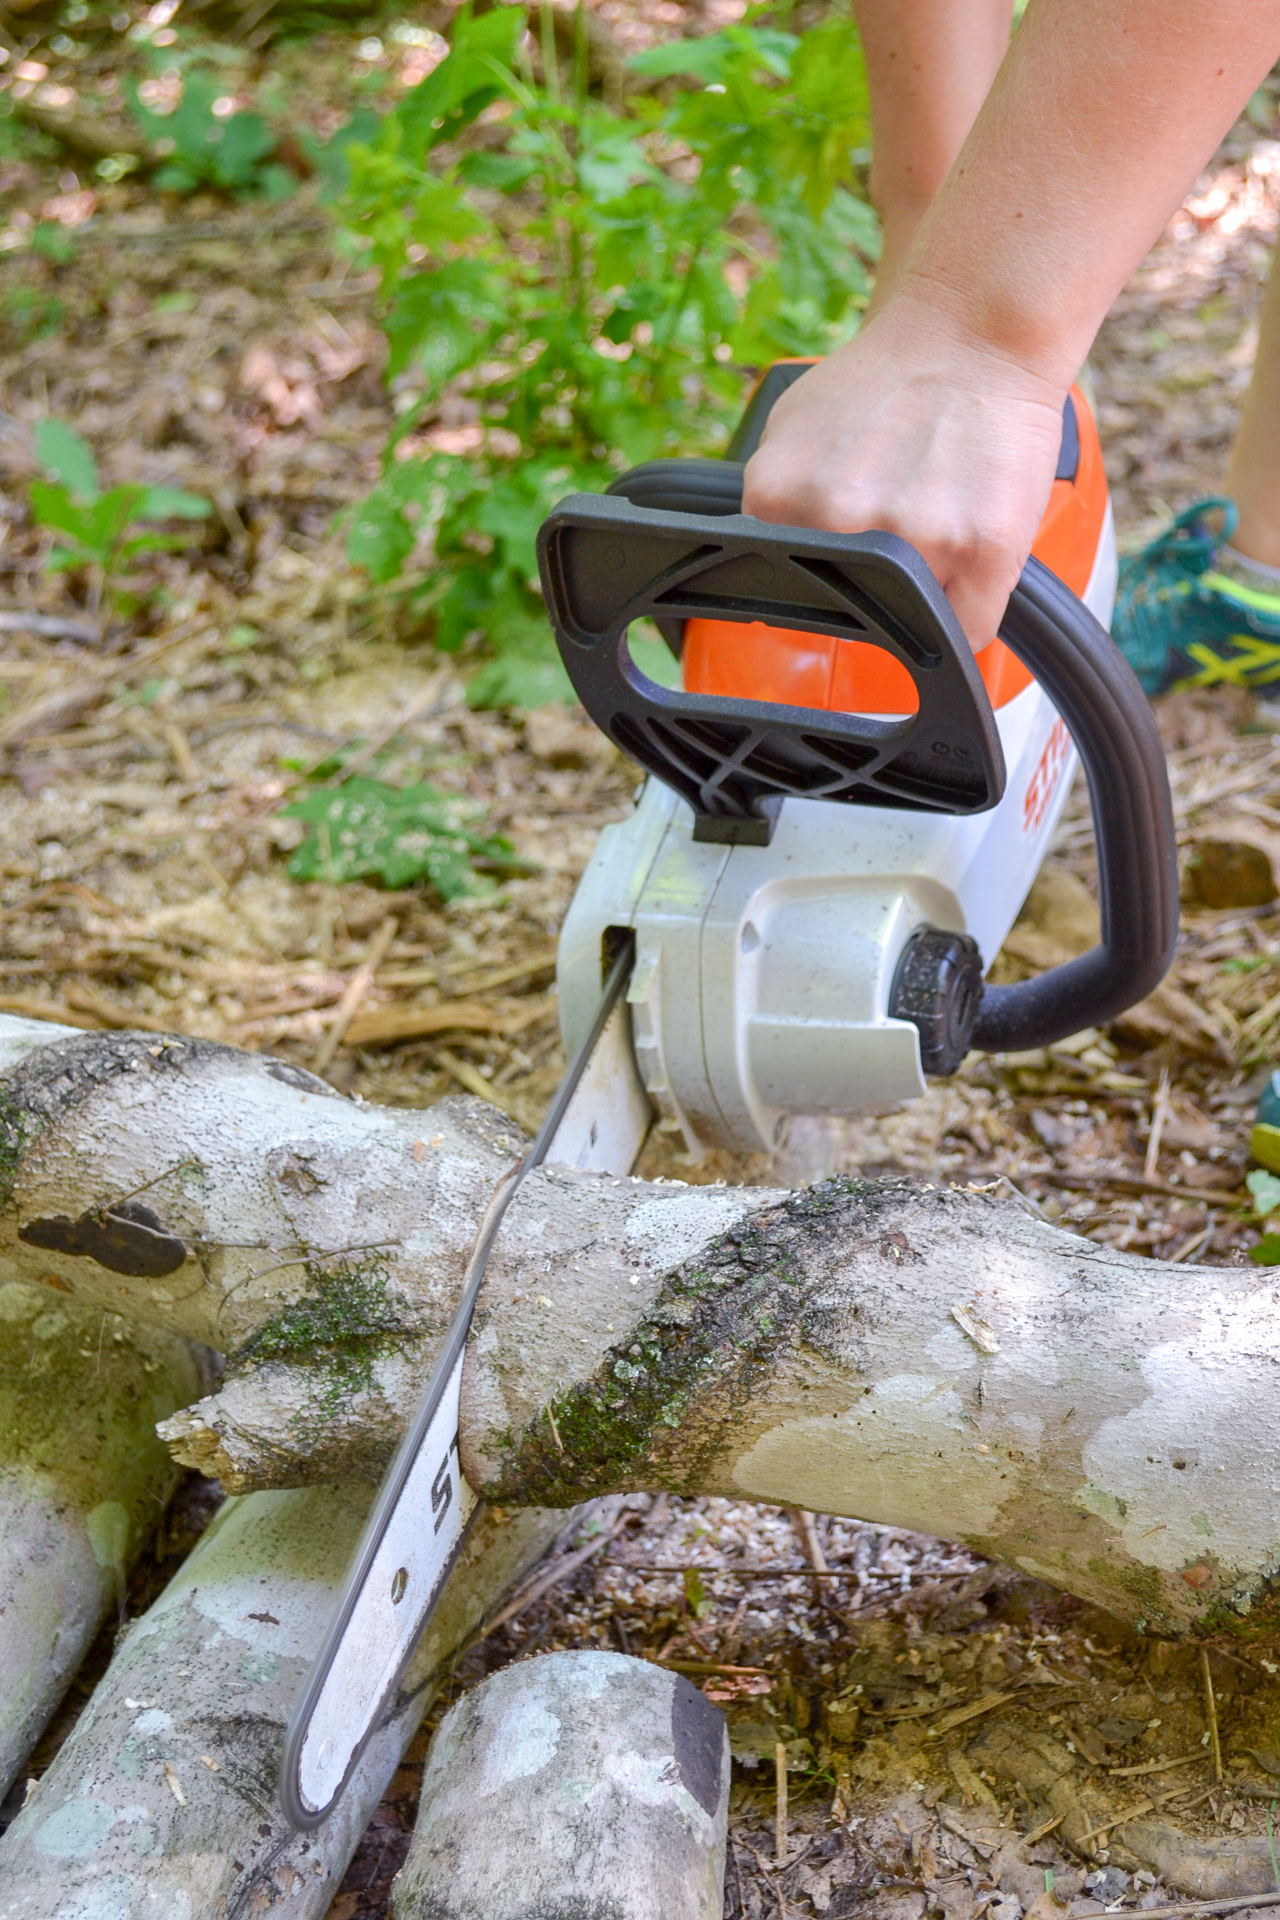 Another angle STIHL chainsaw cutting through log